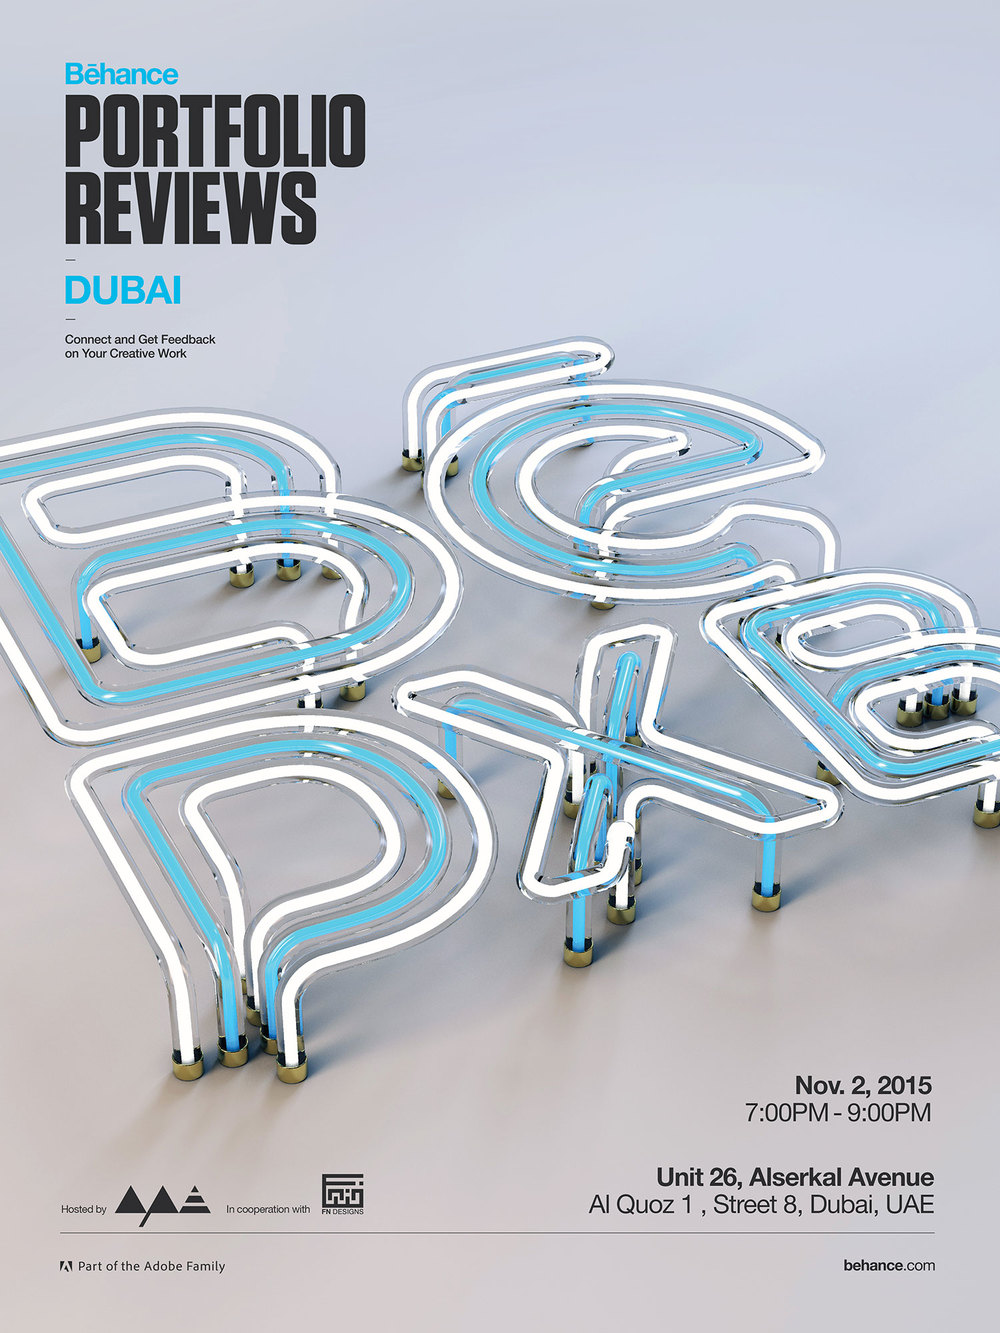 Behance-Review-Dubai-Poster_FAW-01-01.jpg